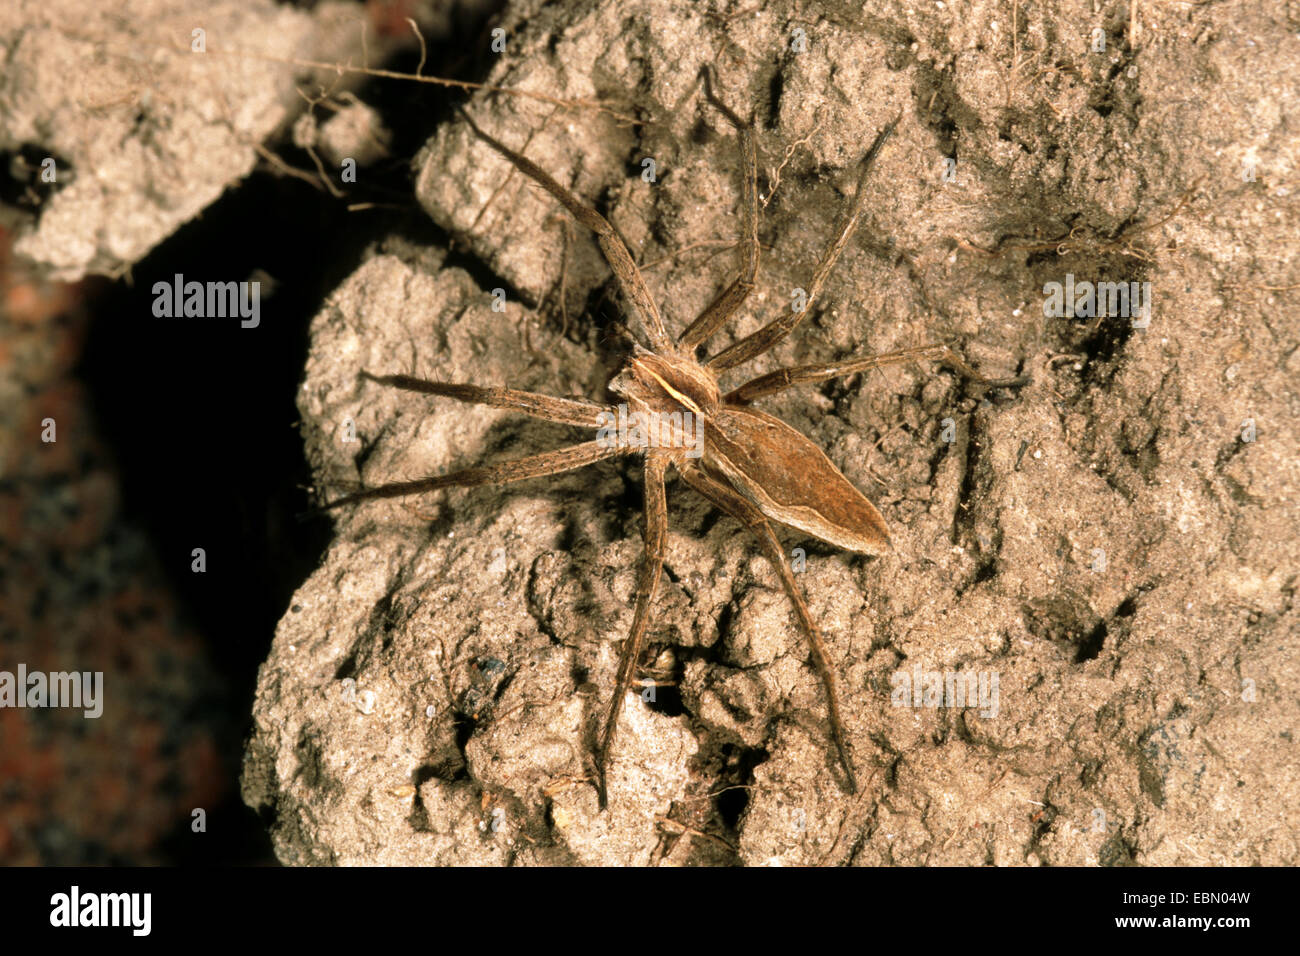 nursery web spider, fantastic fishing spider (Pisaura mirabilis), on a stone, Germany - Stock Image